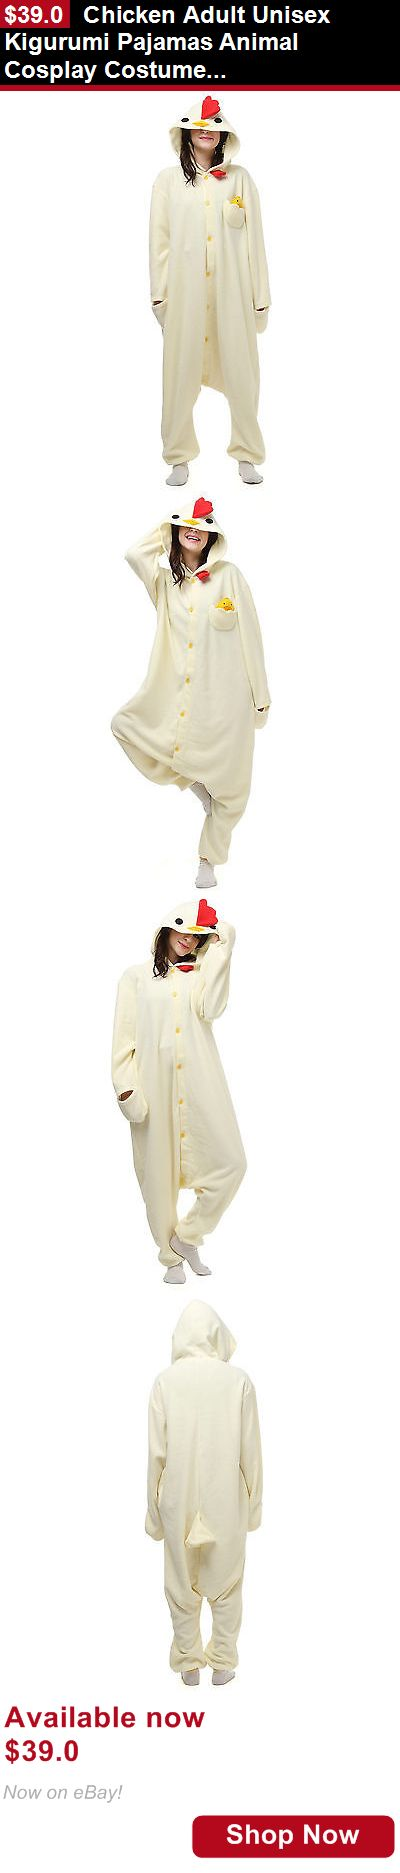 Costumes and reenactment attire: Chicken Adult Unisex Kigurumi Pajamas Animal Cosplay Costume Onesie Sleepwear BUY IT NOW ONLY: $39.0